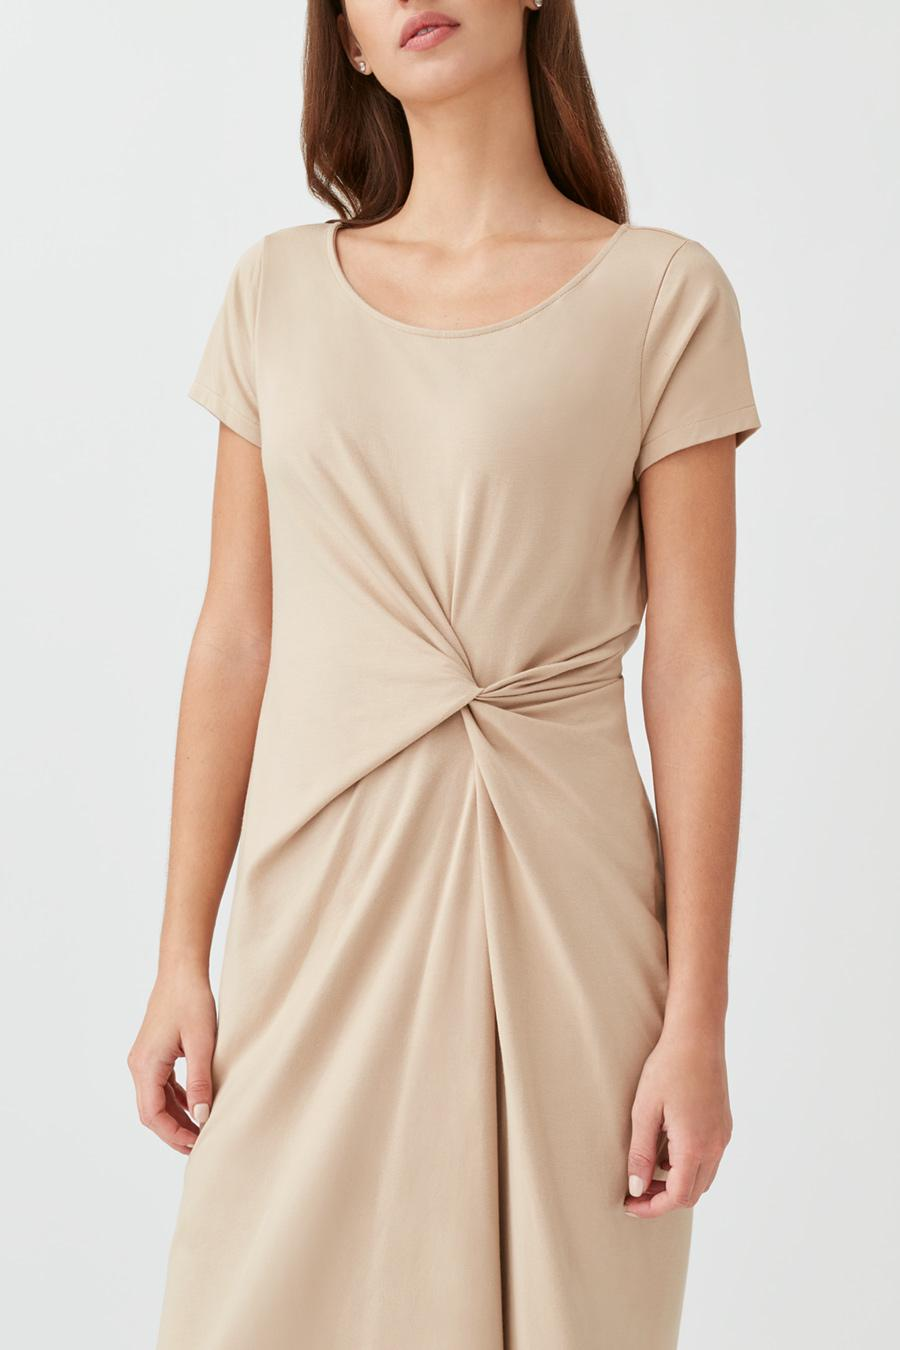 Women's Gathered Front Tee Dress in Dune | Size: Small | Pima Modal Spandex Blend by Cuyana 3